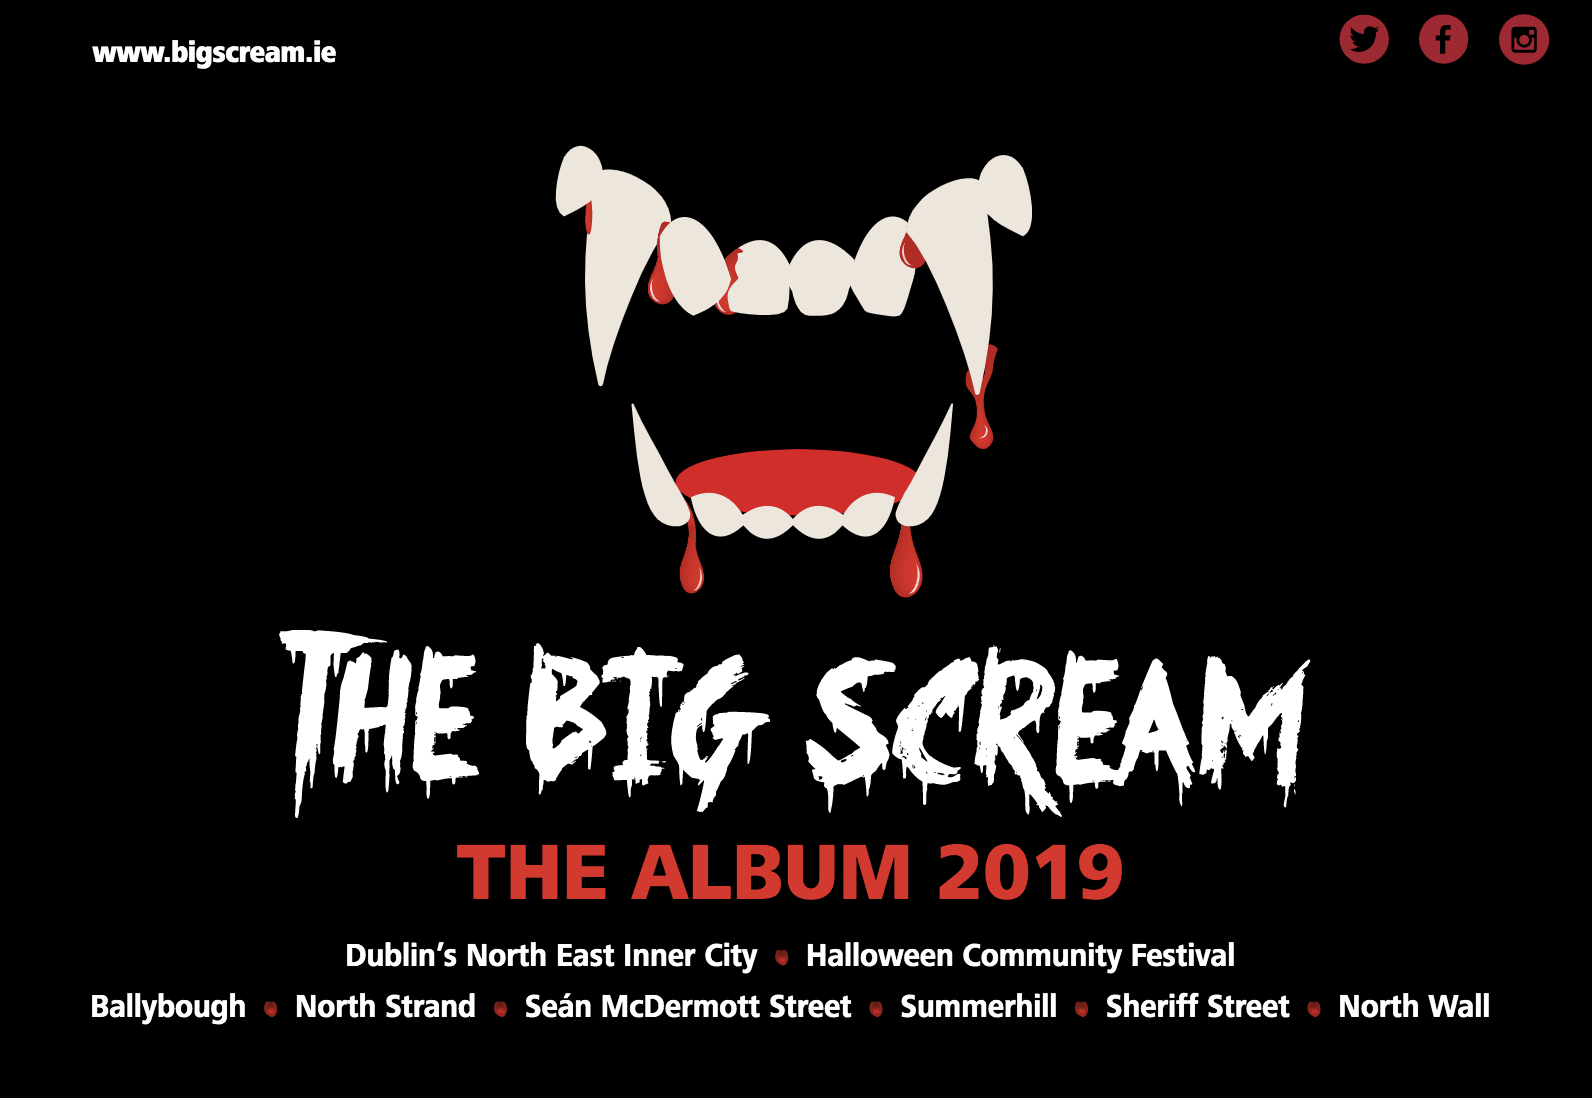 The Big Scream Photo Album